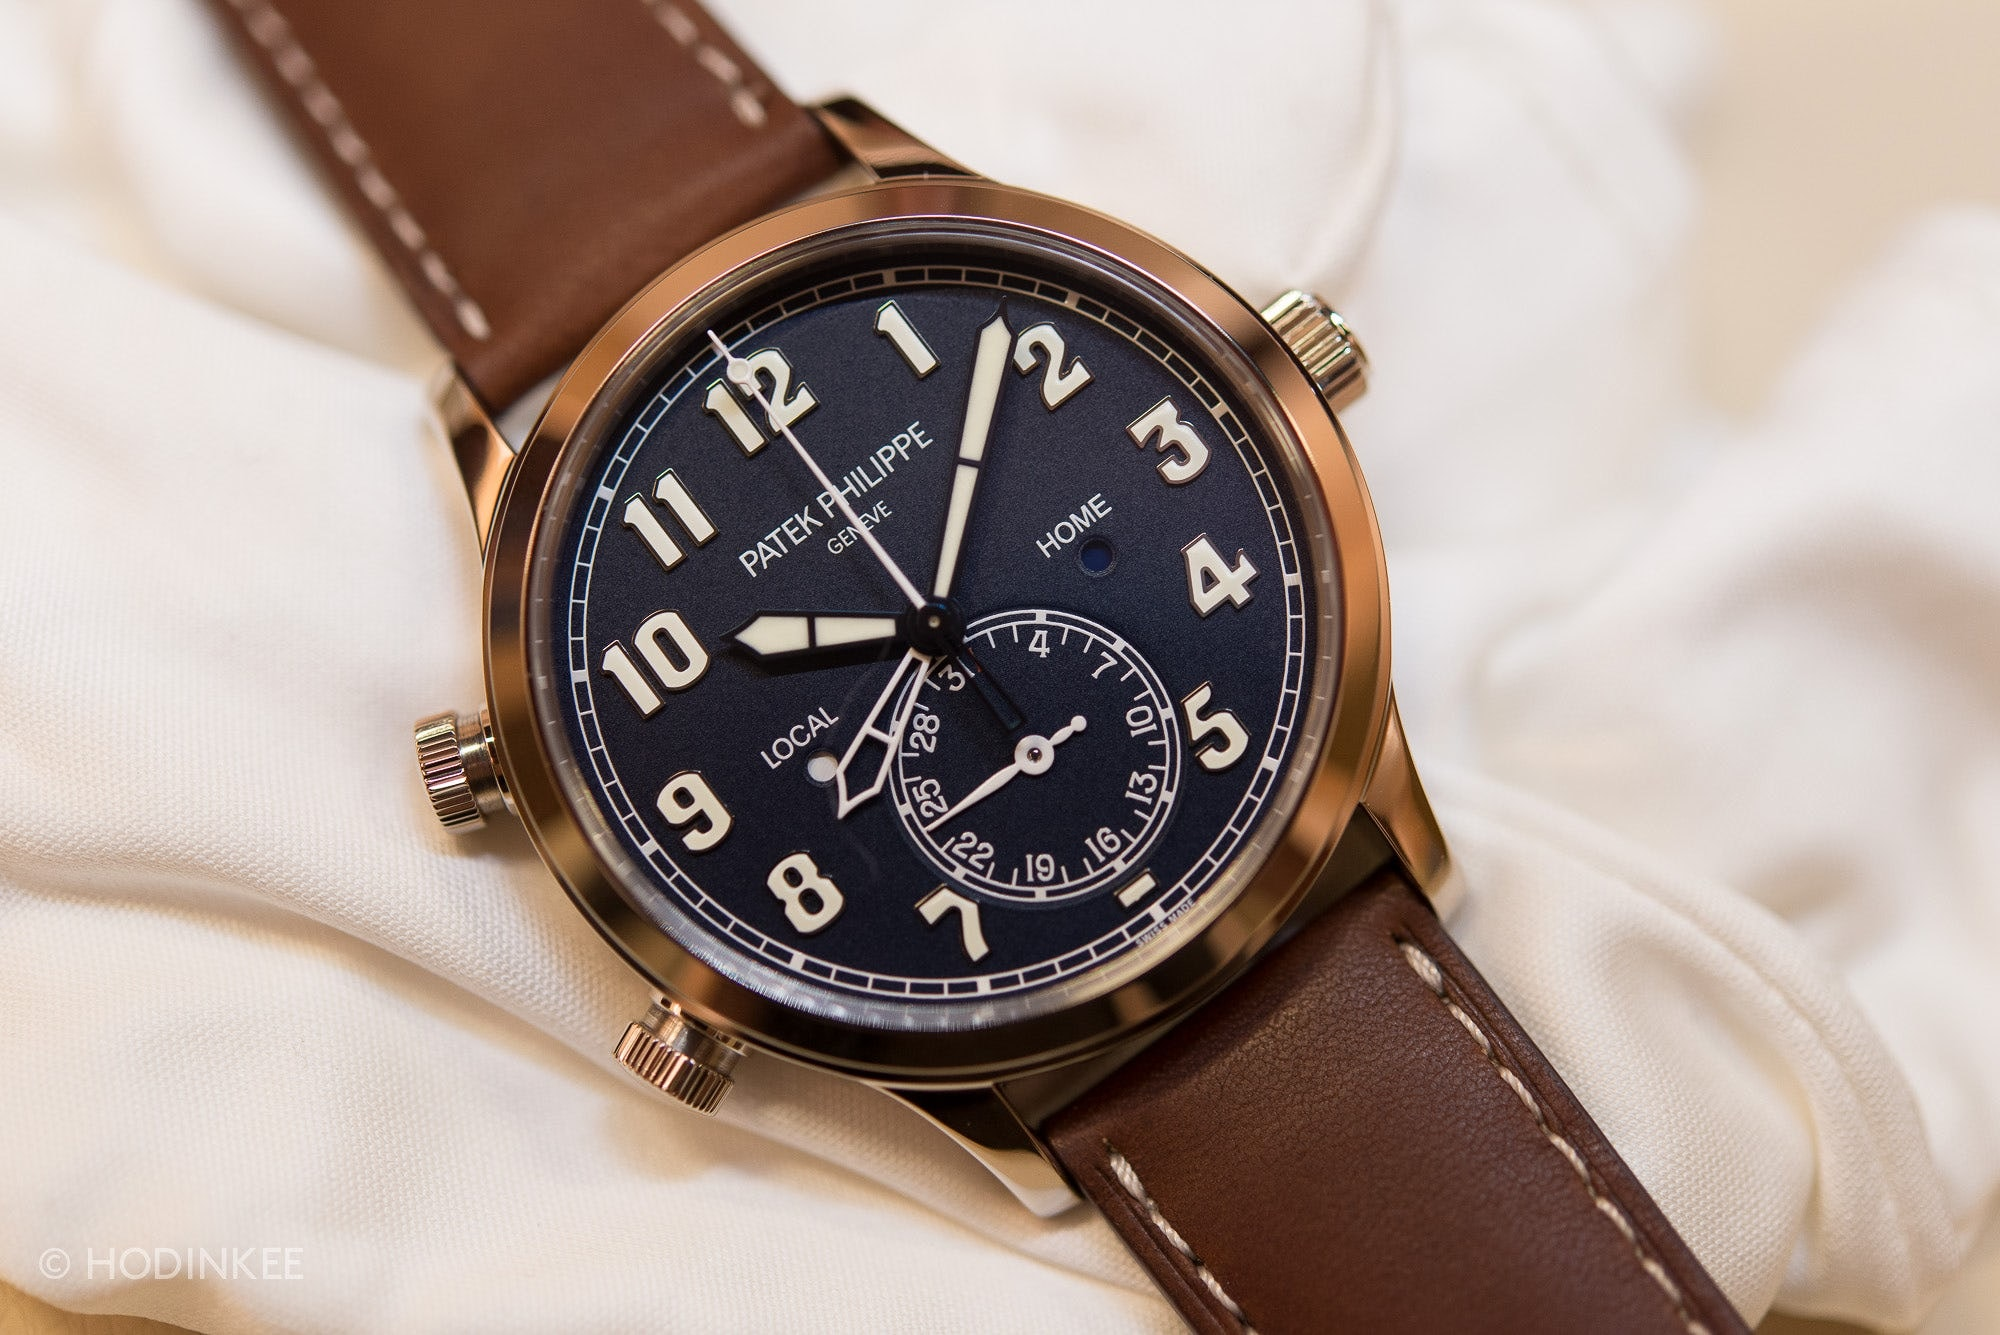 Baselworld 2018: Patek Philippe Is Now On Instagram, And So Is The New 5524R Pilots Watch Baselworld 2018: Patek Philippe Is Now On Instagram, And So Is The New 5524R Pilots Watch PatekPhilippe5524G 1